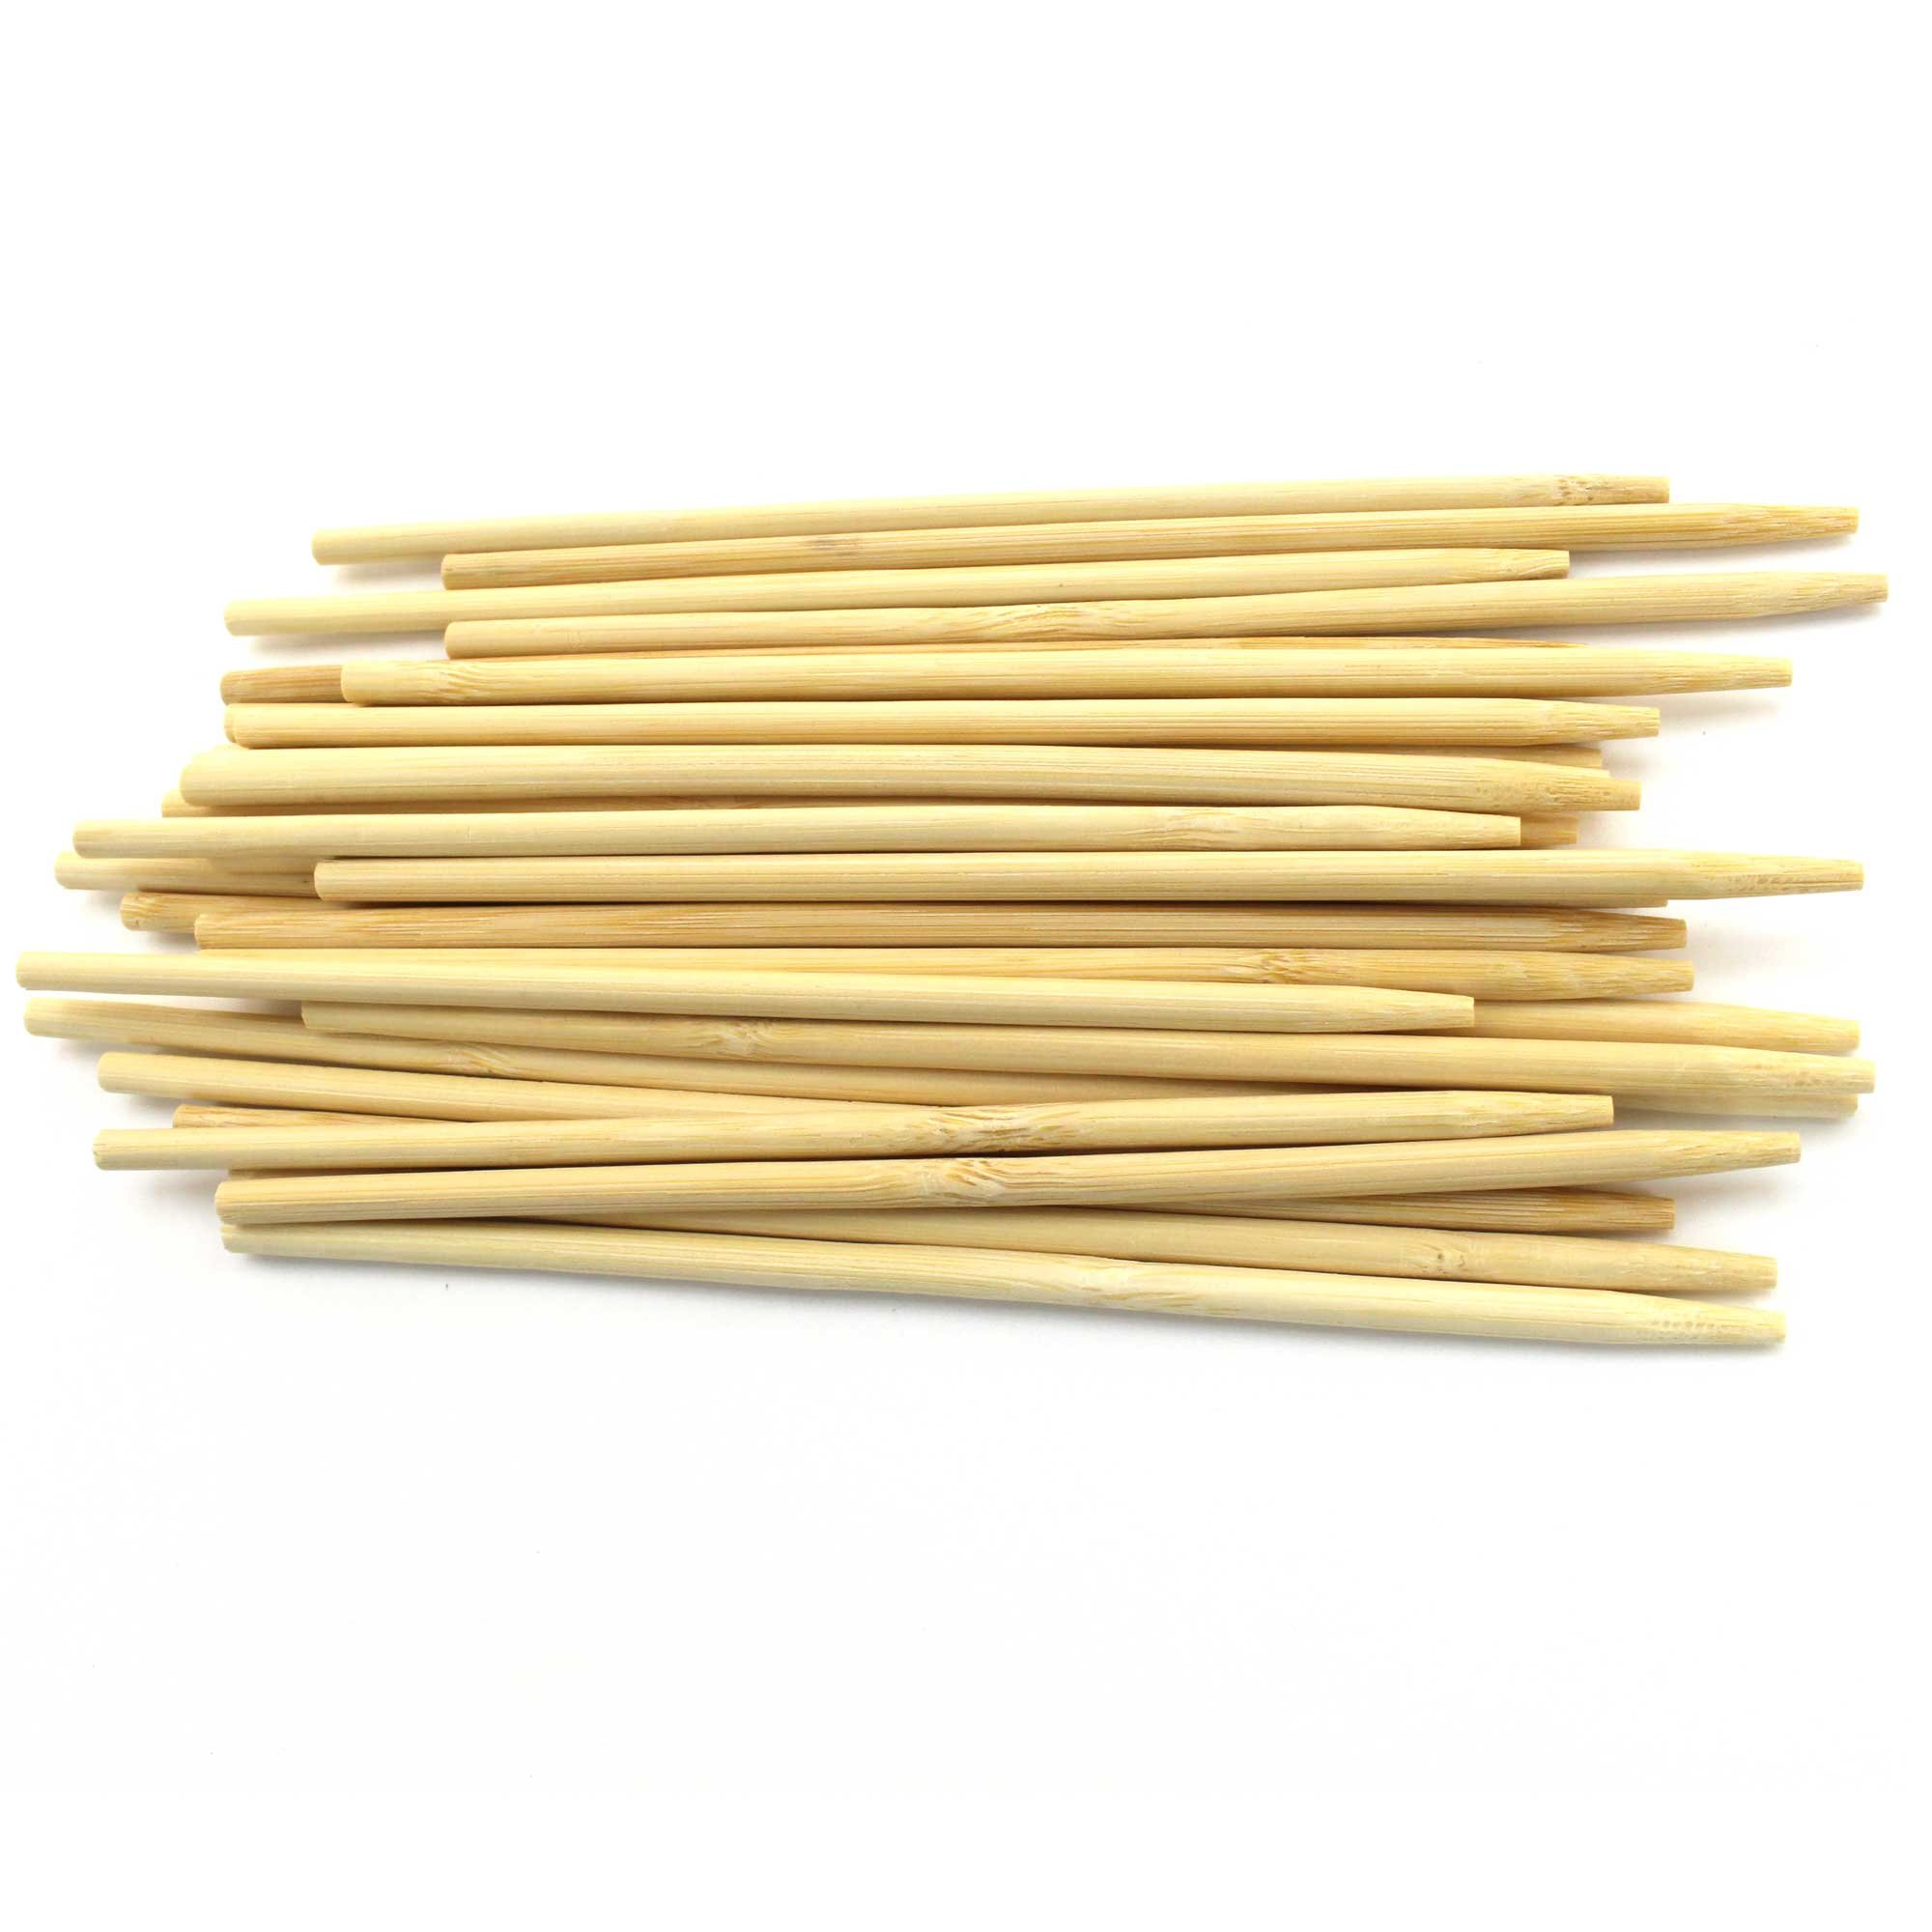 BambooMN 11.8'' Long 6mm Thick Bamboo Semi Point Candy Apple, Corn Dog, Multipurpose Food Skewer, 1,000 Pieces